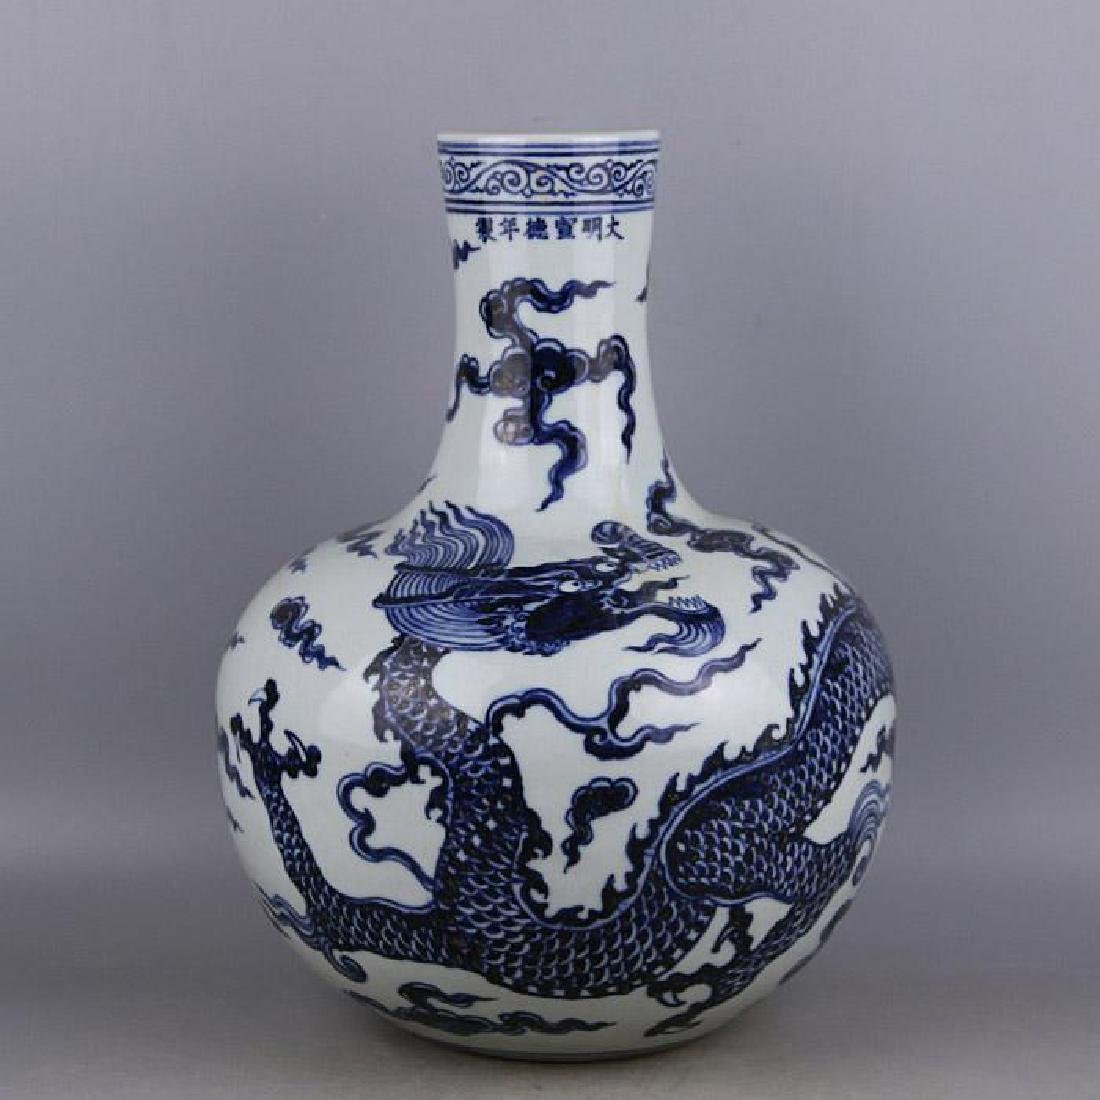 A Blue and White Porcelain Vase - 9